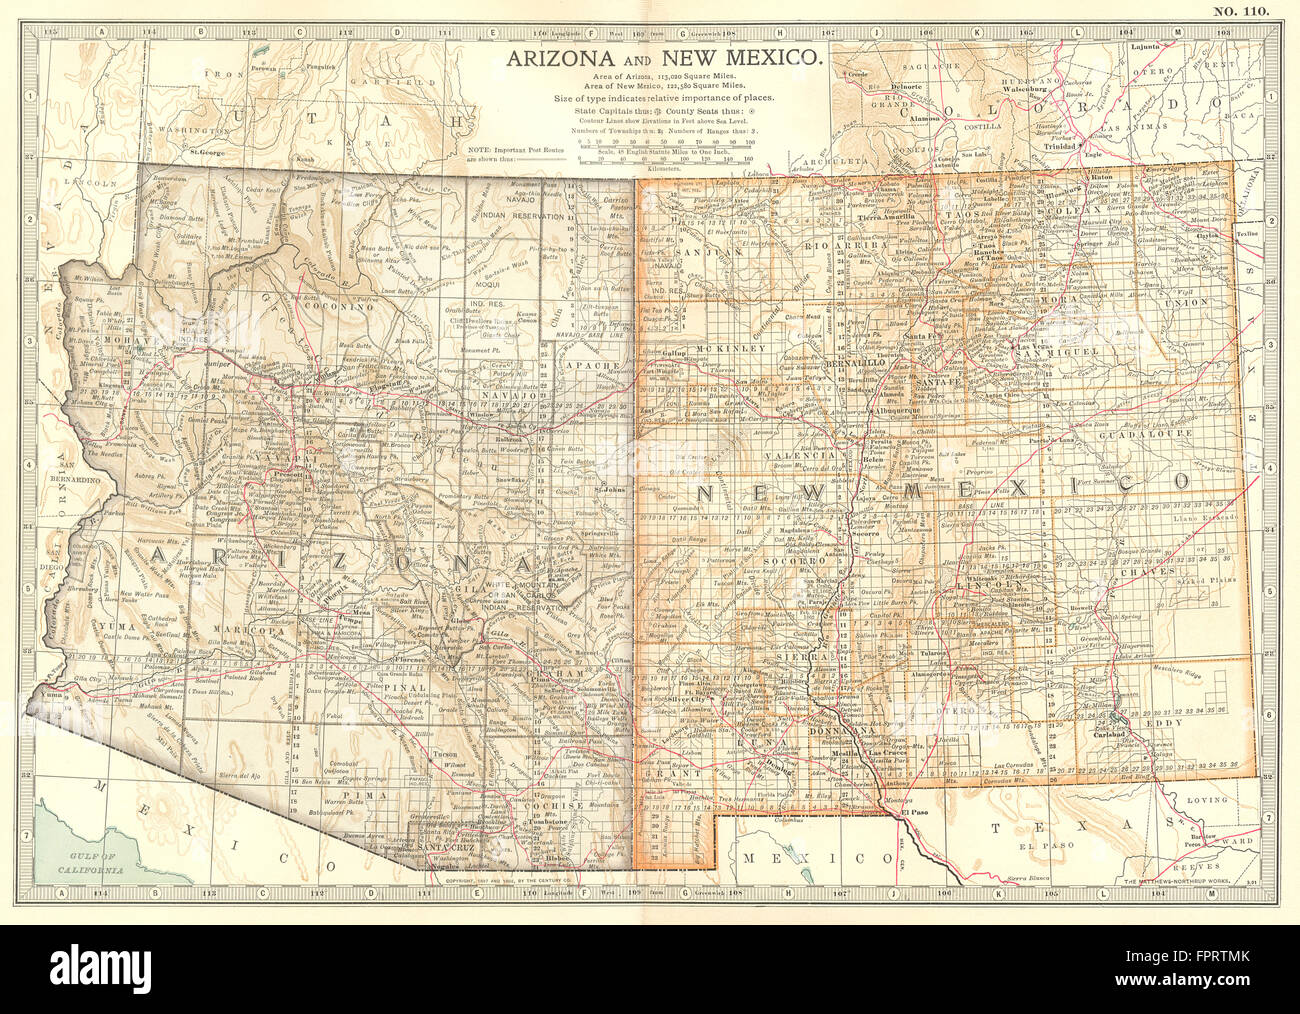 ARIZONA NEW MEXICO State Map Showing Counties Britannica Th - Arizona state map with counties